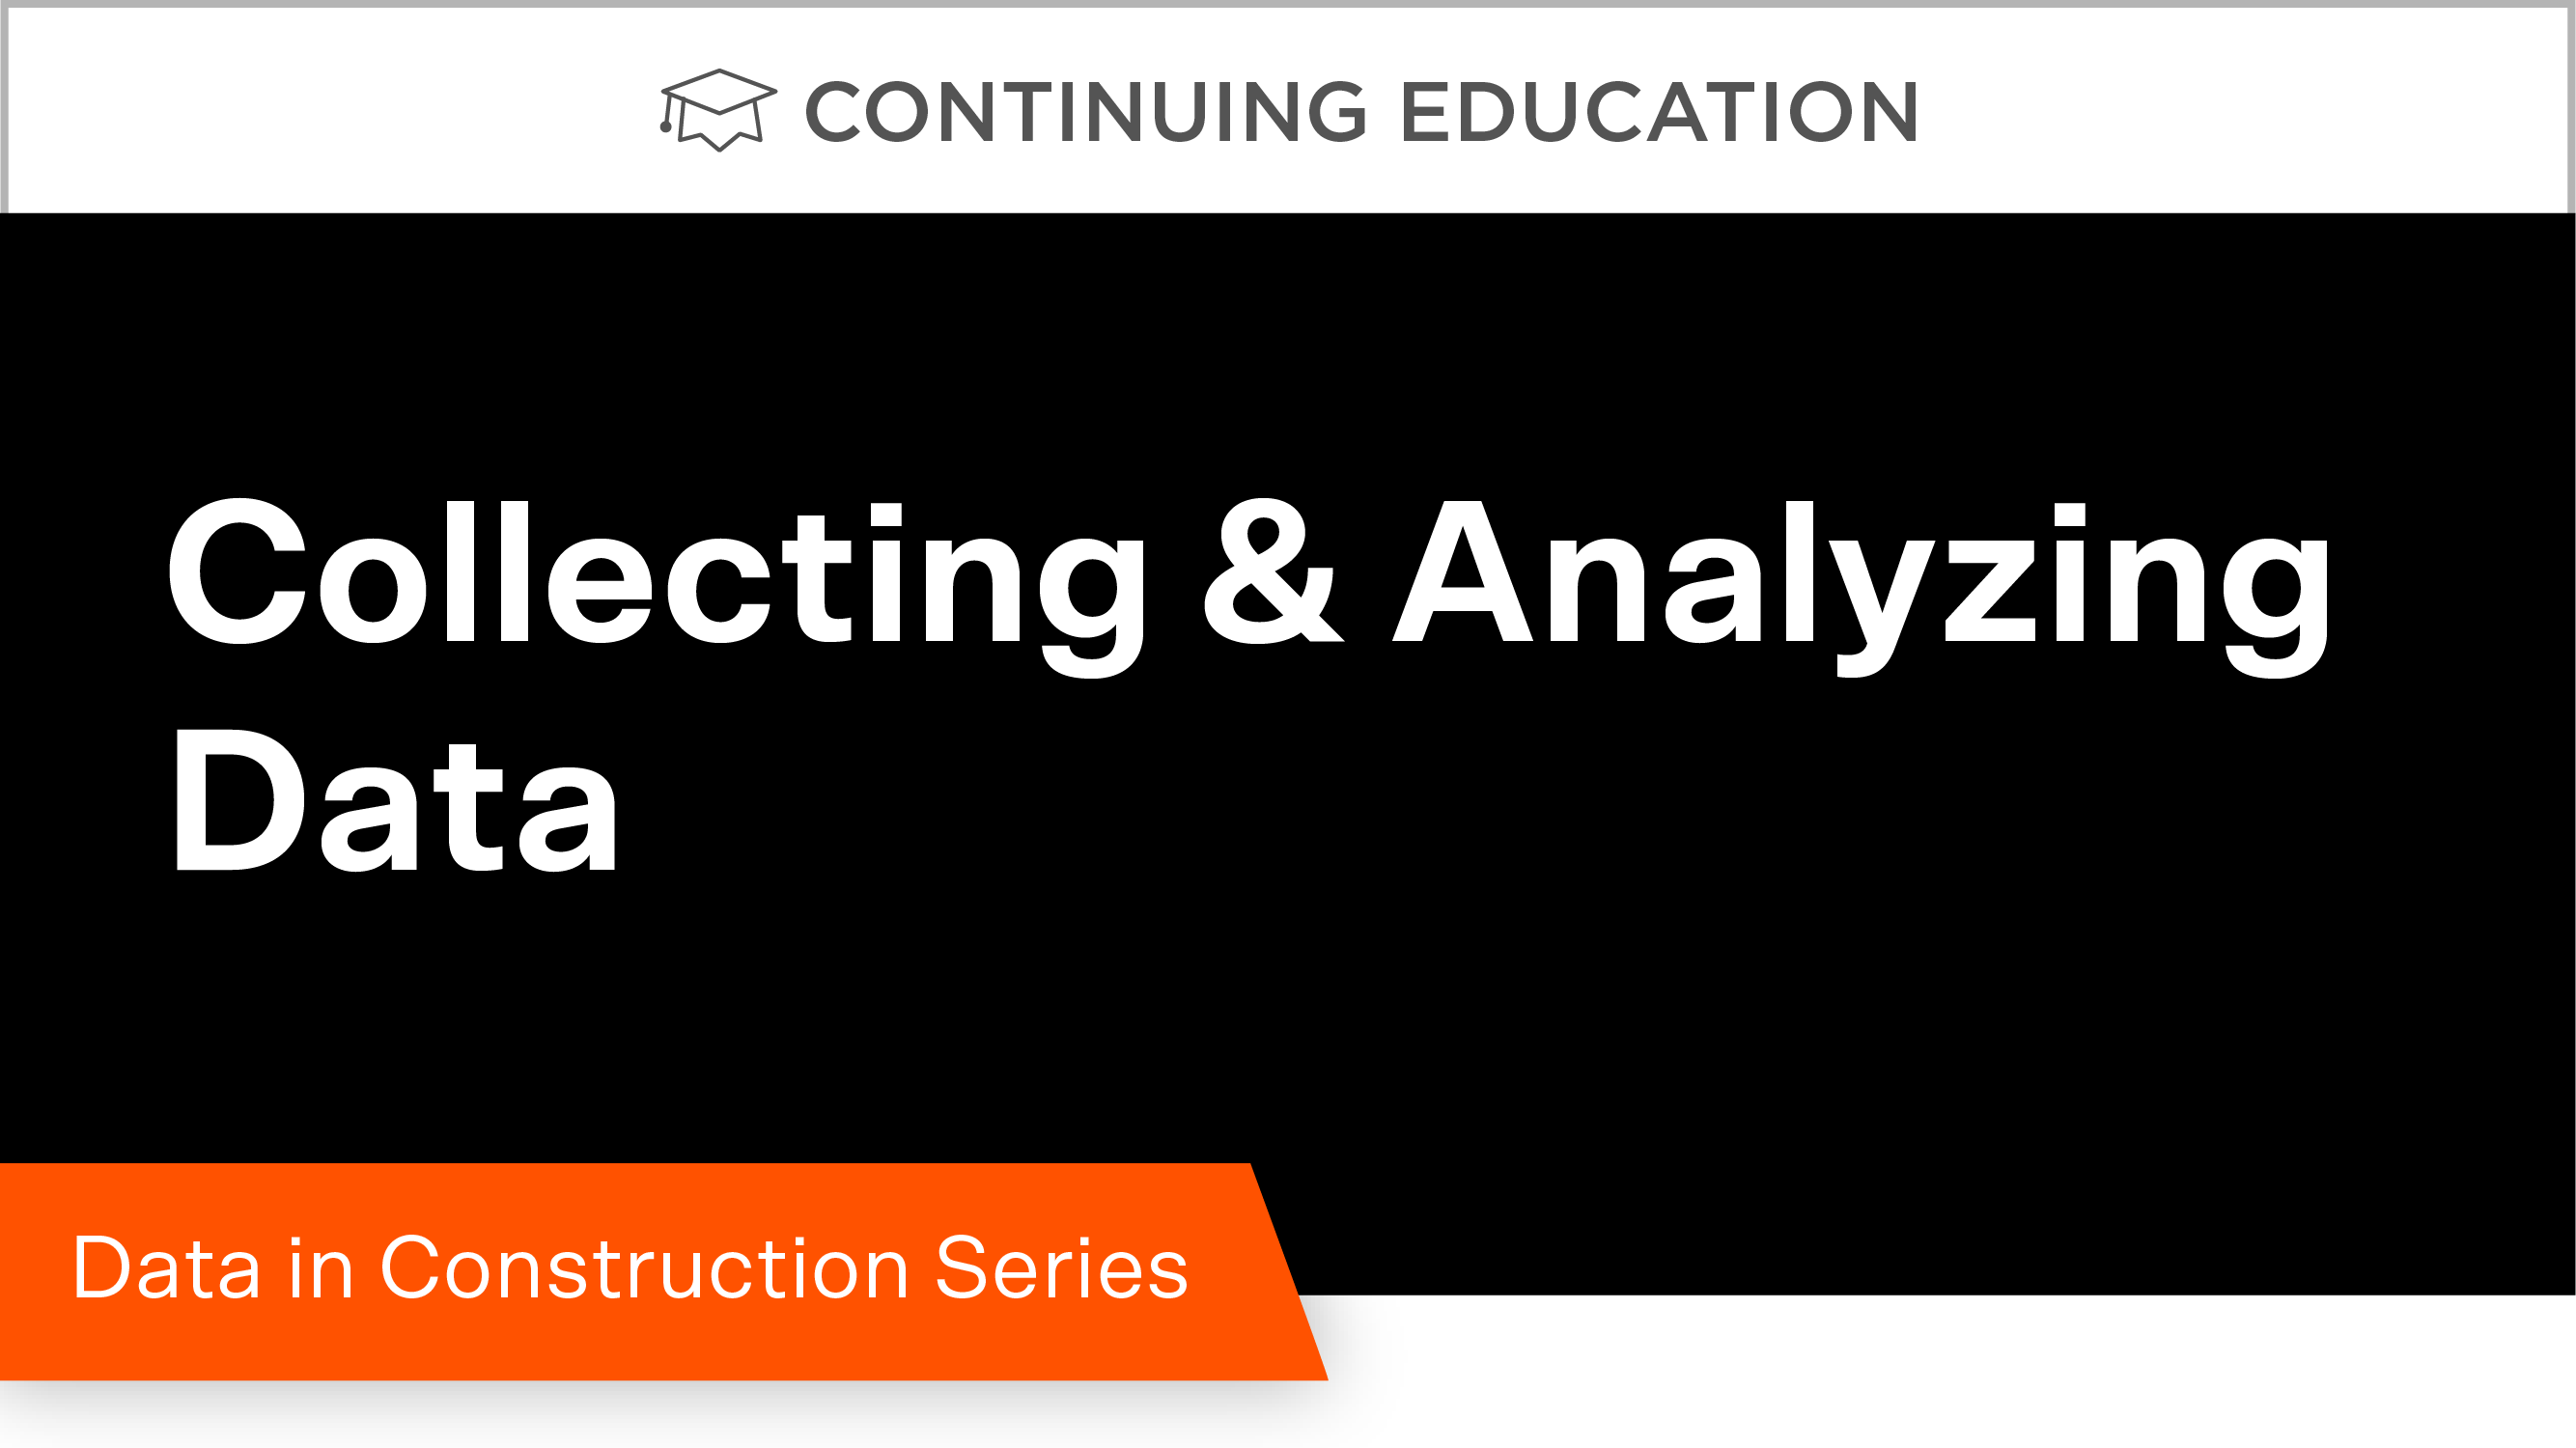 Data in Construction Part 2: Collecting and Analyzing Data